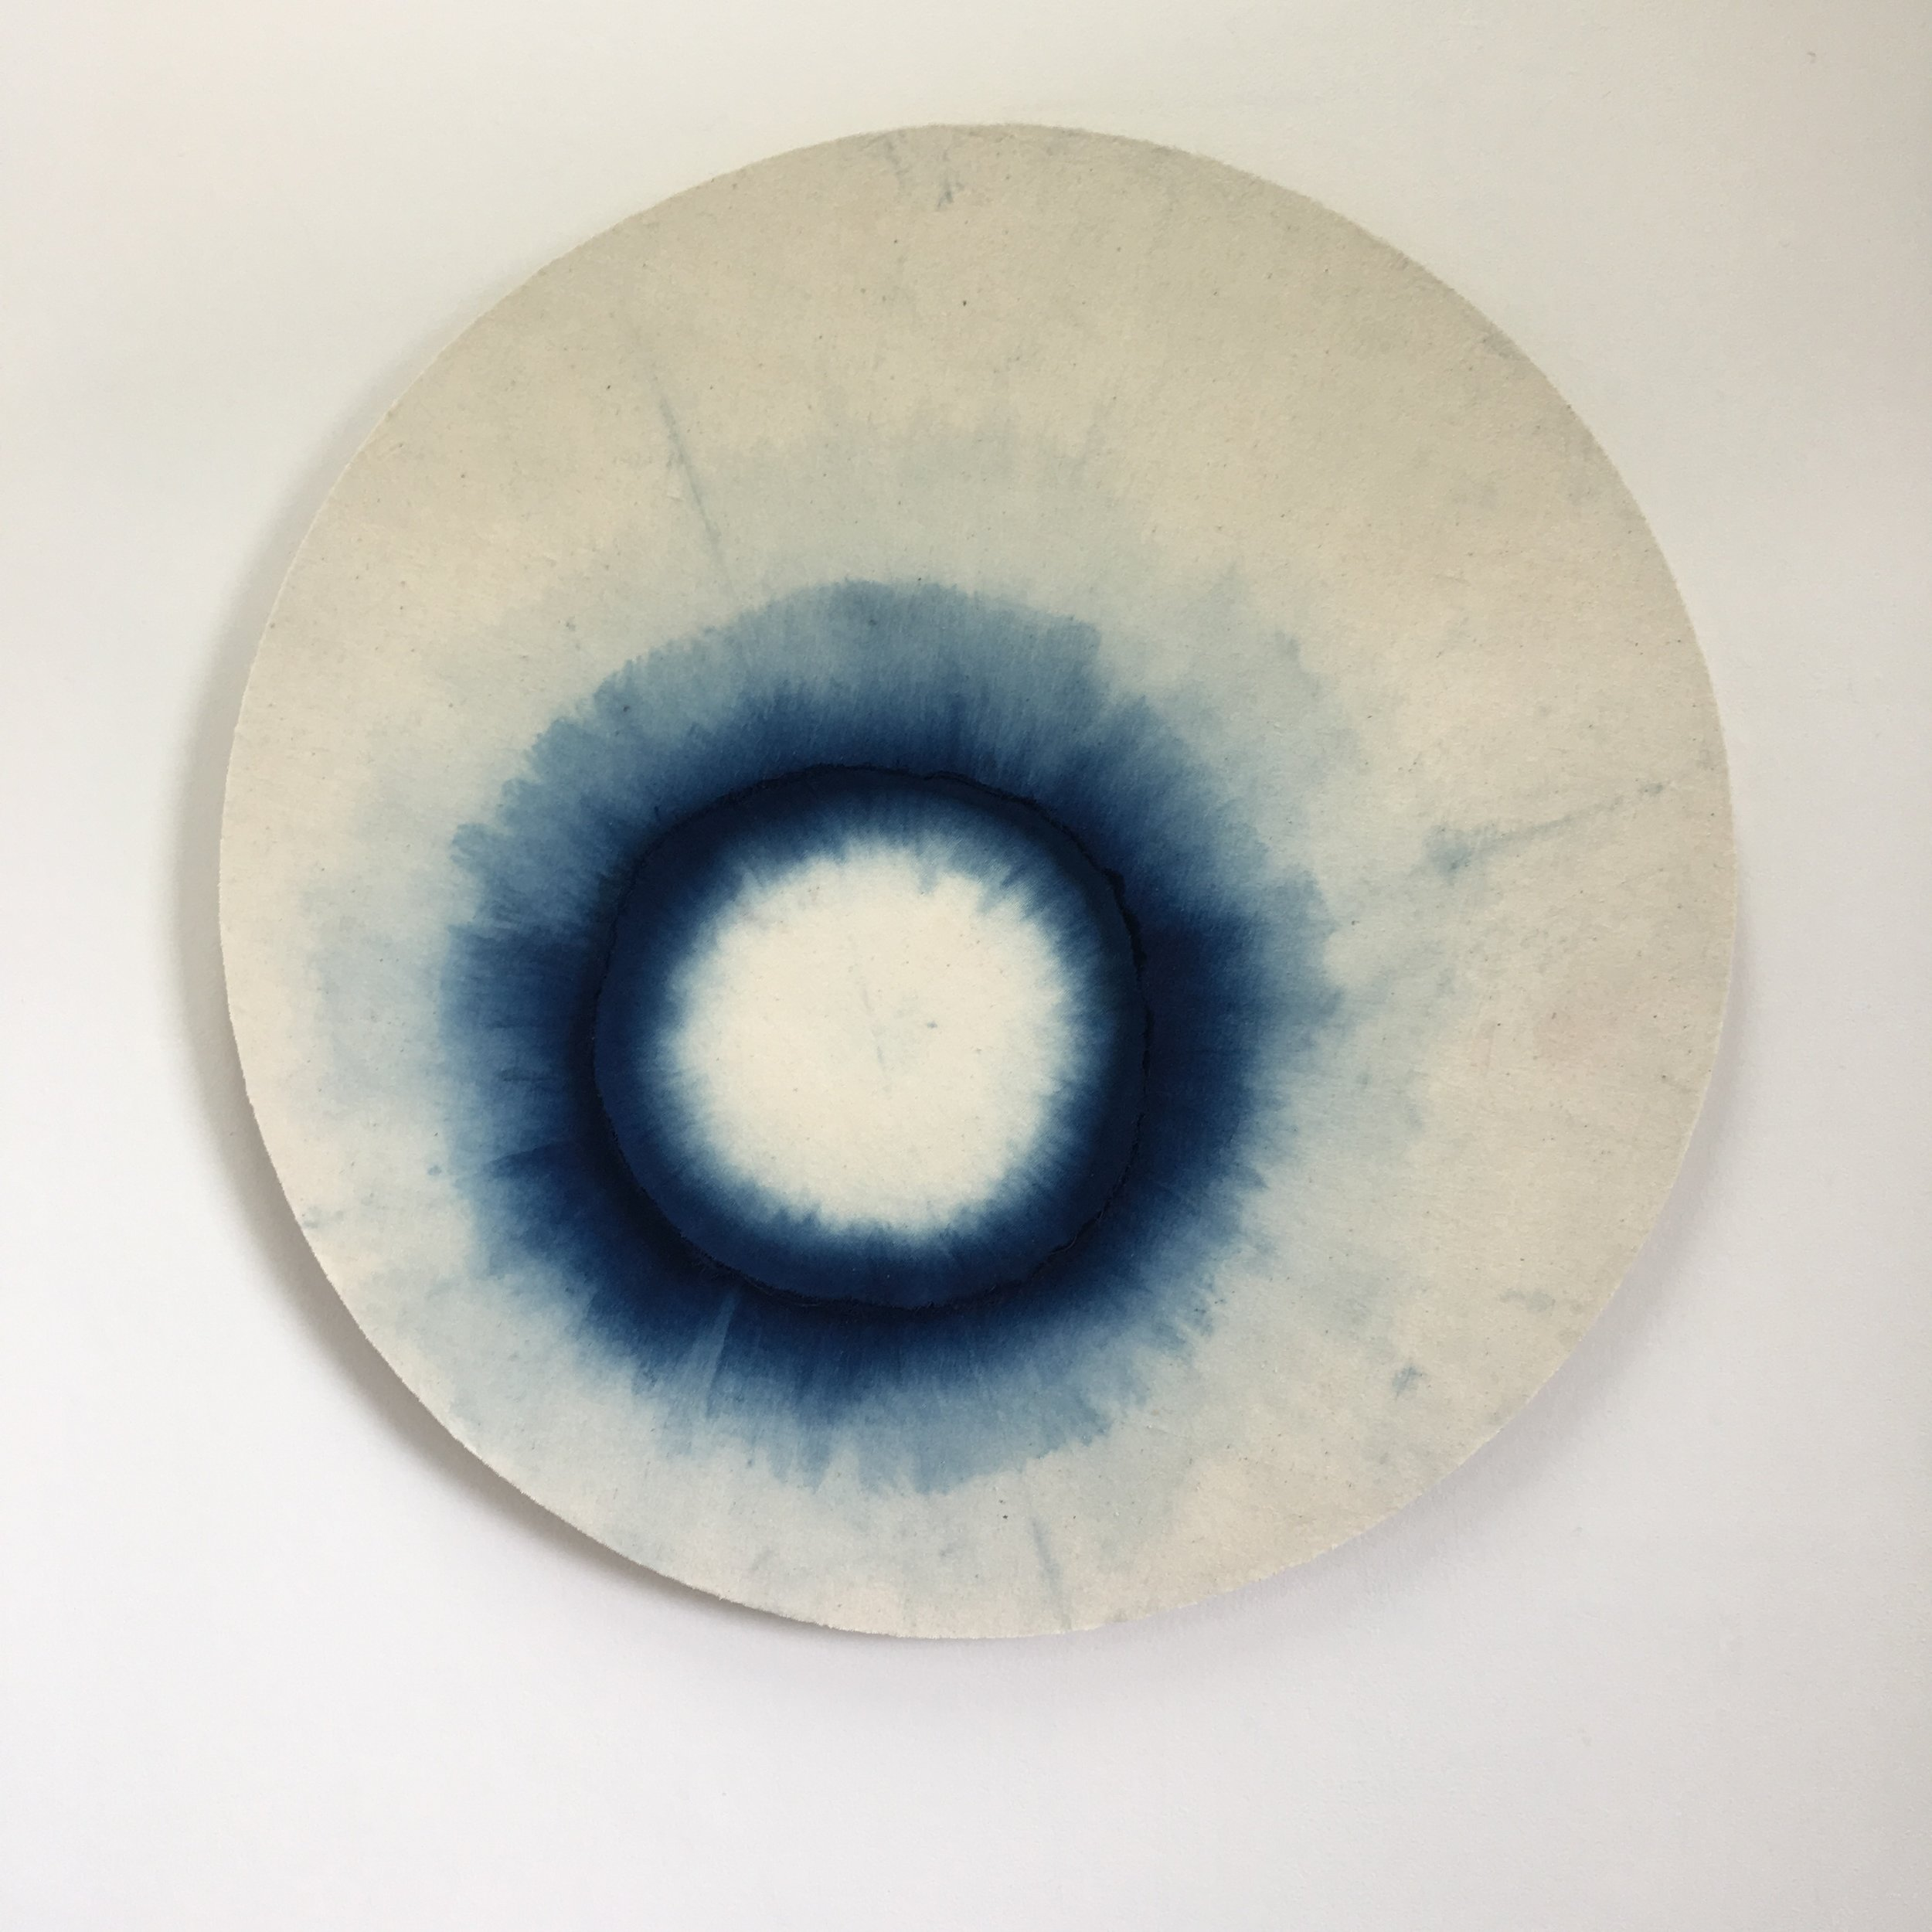 Indigo  opening out and dipped    Indigo dyed cotton mounted onto layered plywood 890 x 890 x 40